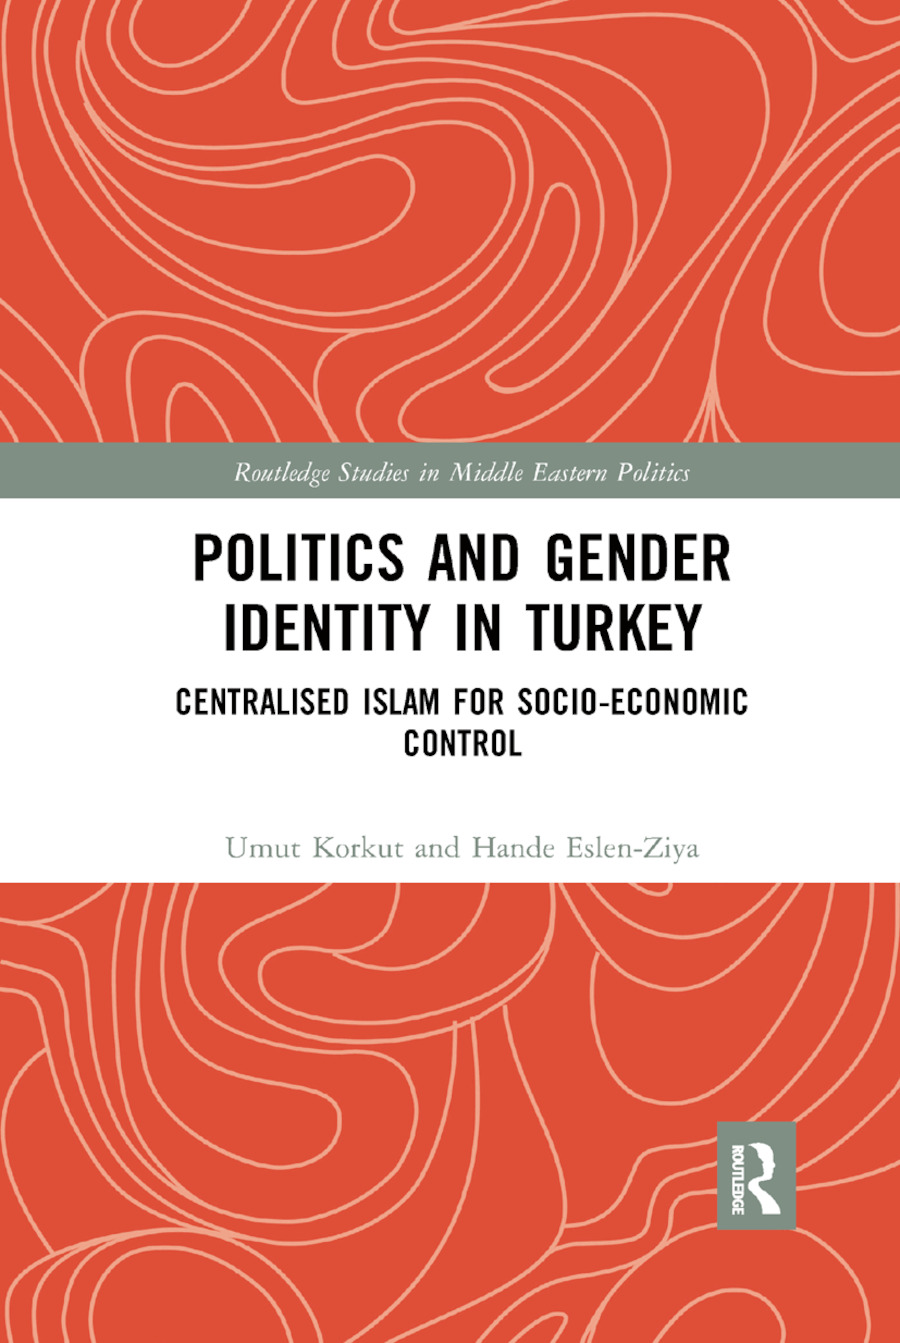 Politics and Gender Identity in Turkey: Centralised Islam for Socio-Economic Control book cover